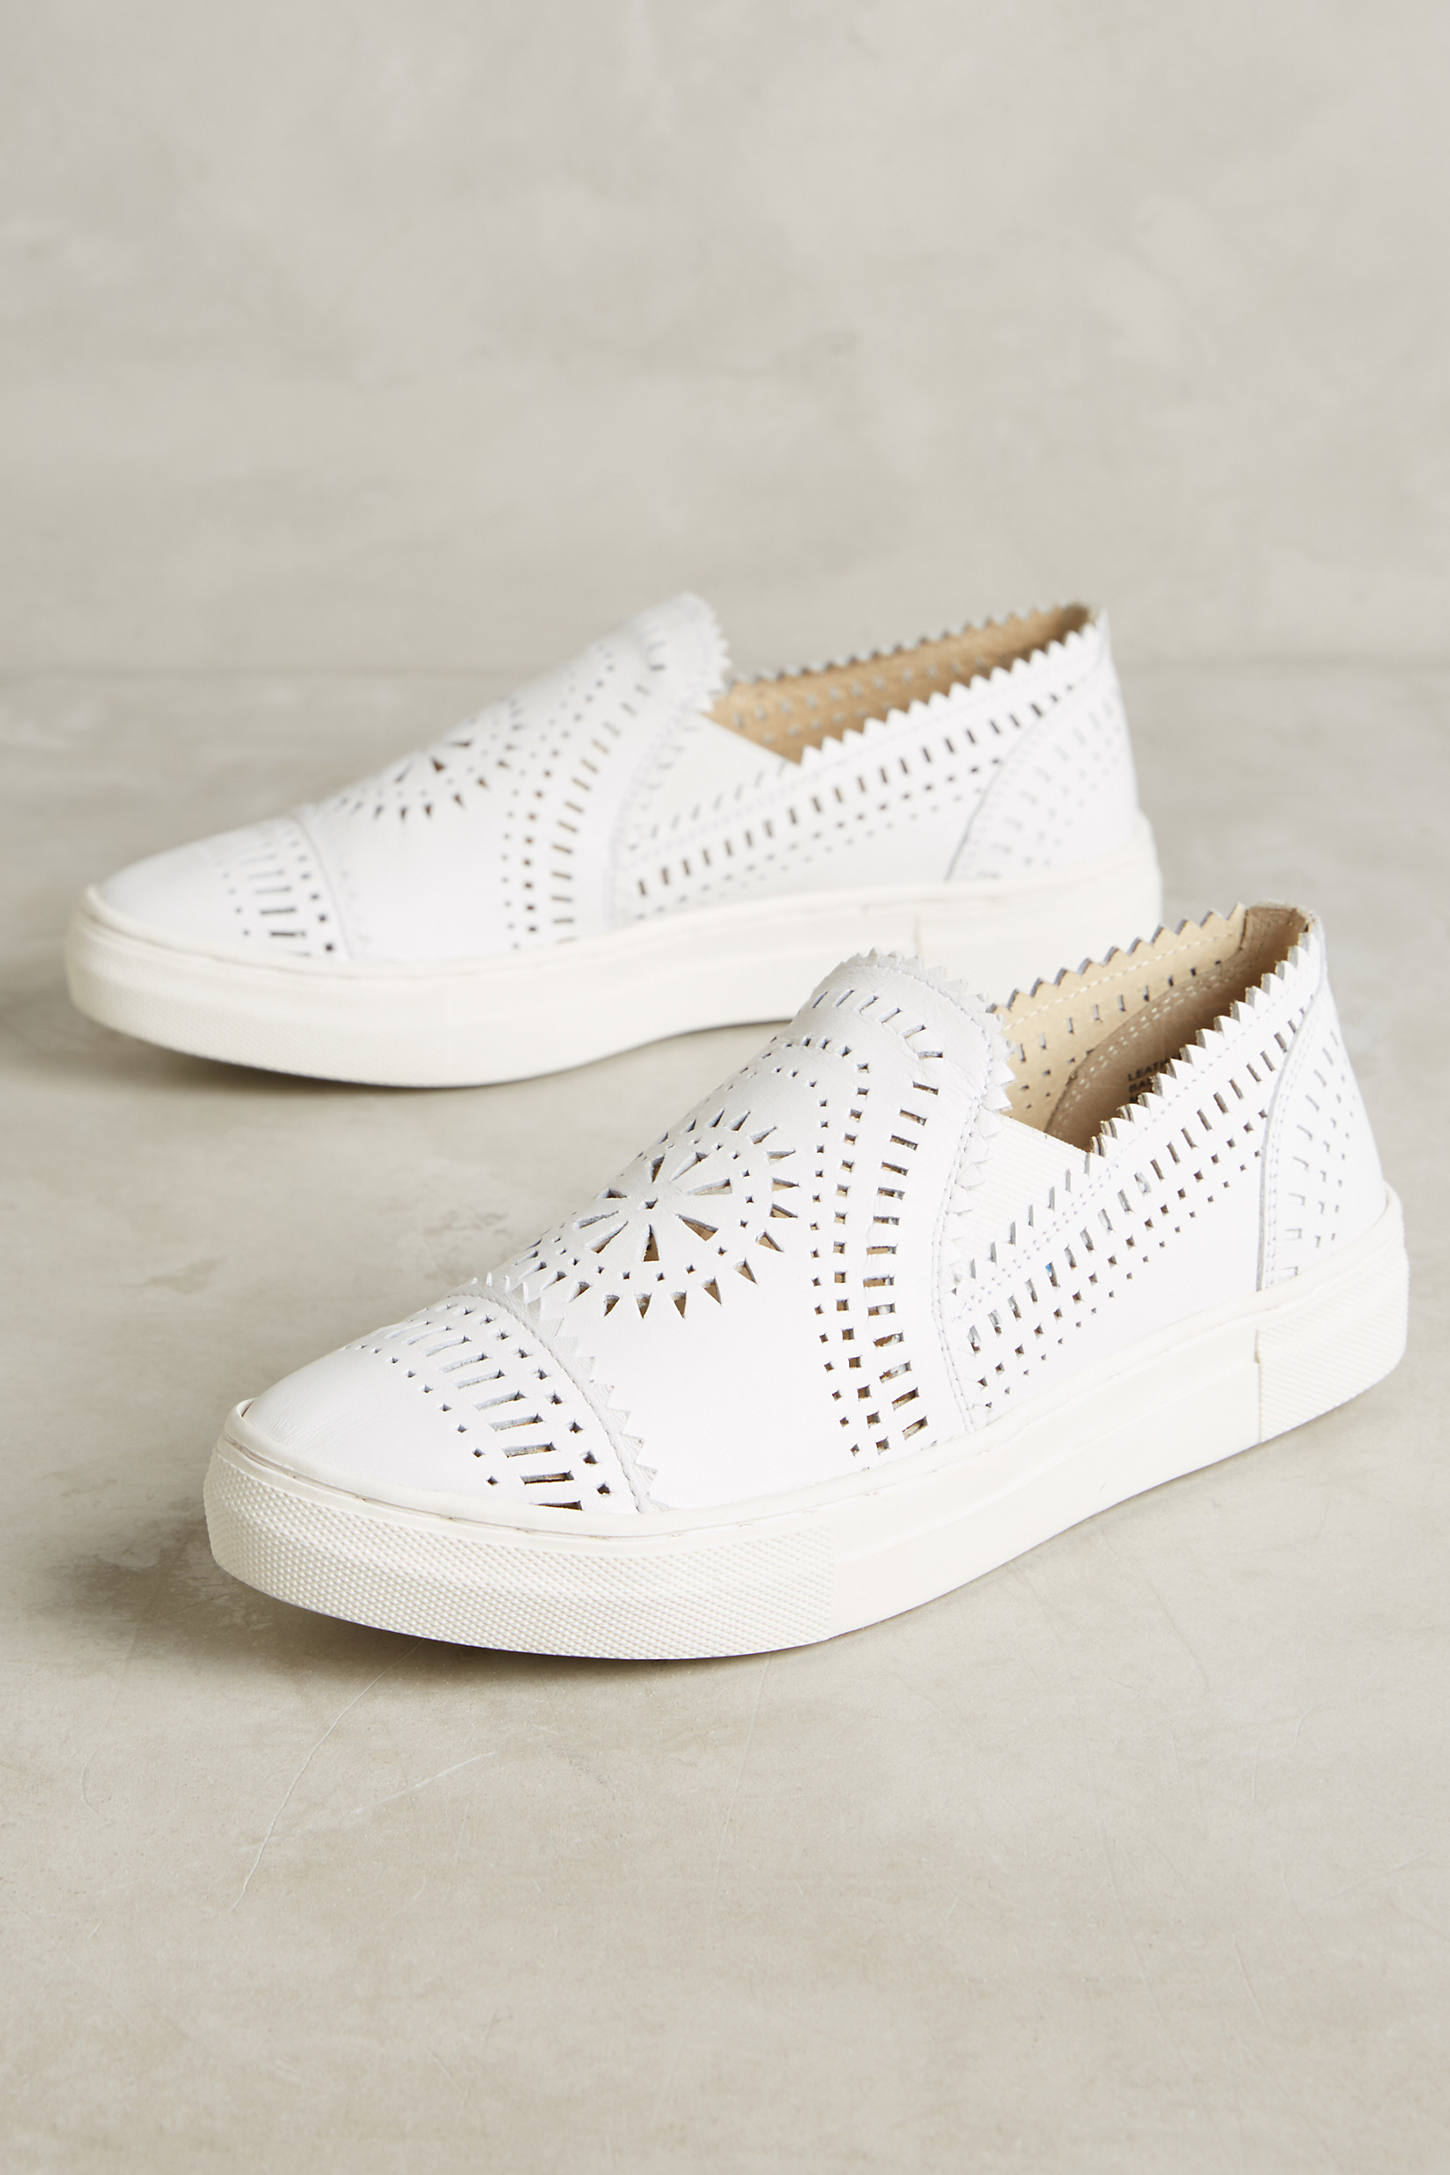 Seychelles So Nice Leather Sneakers